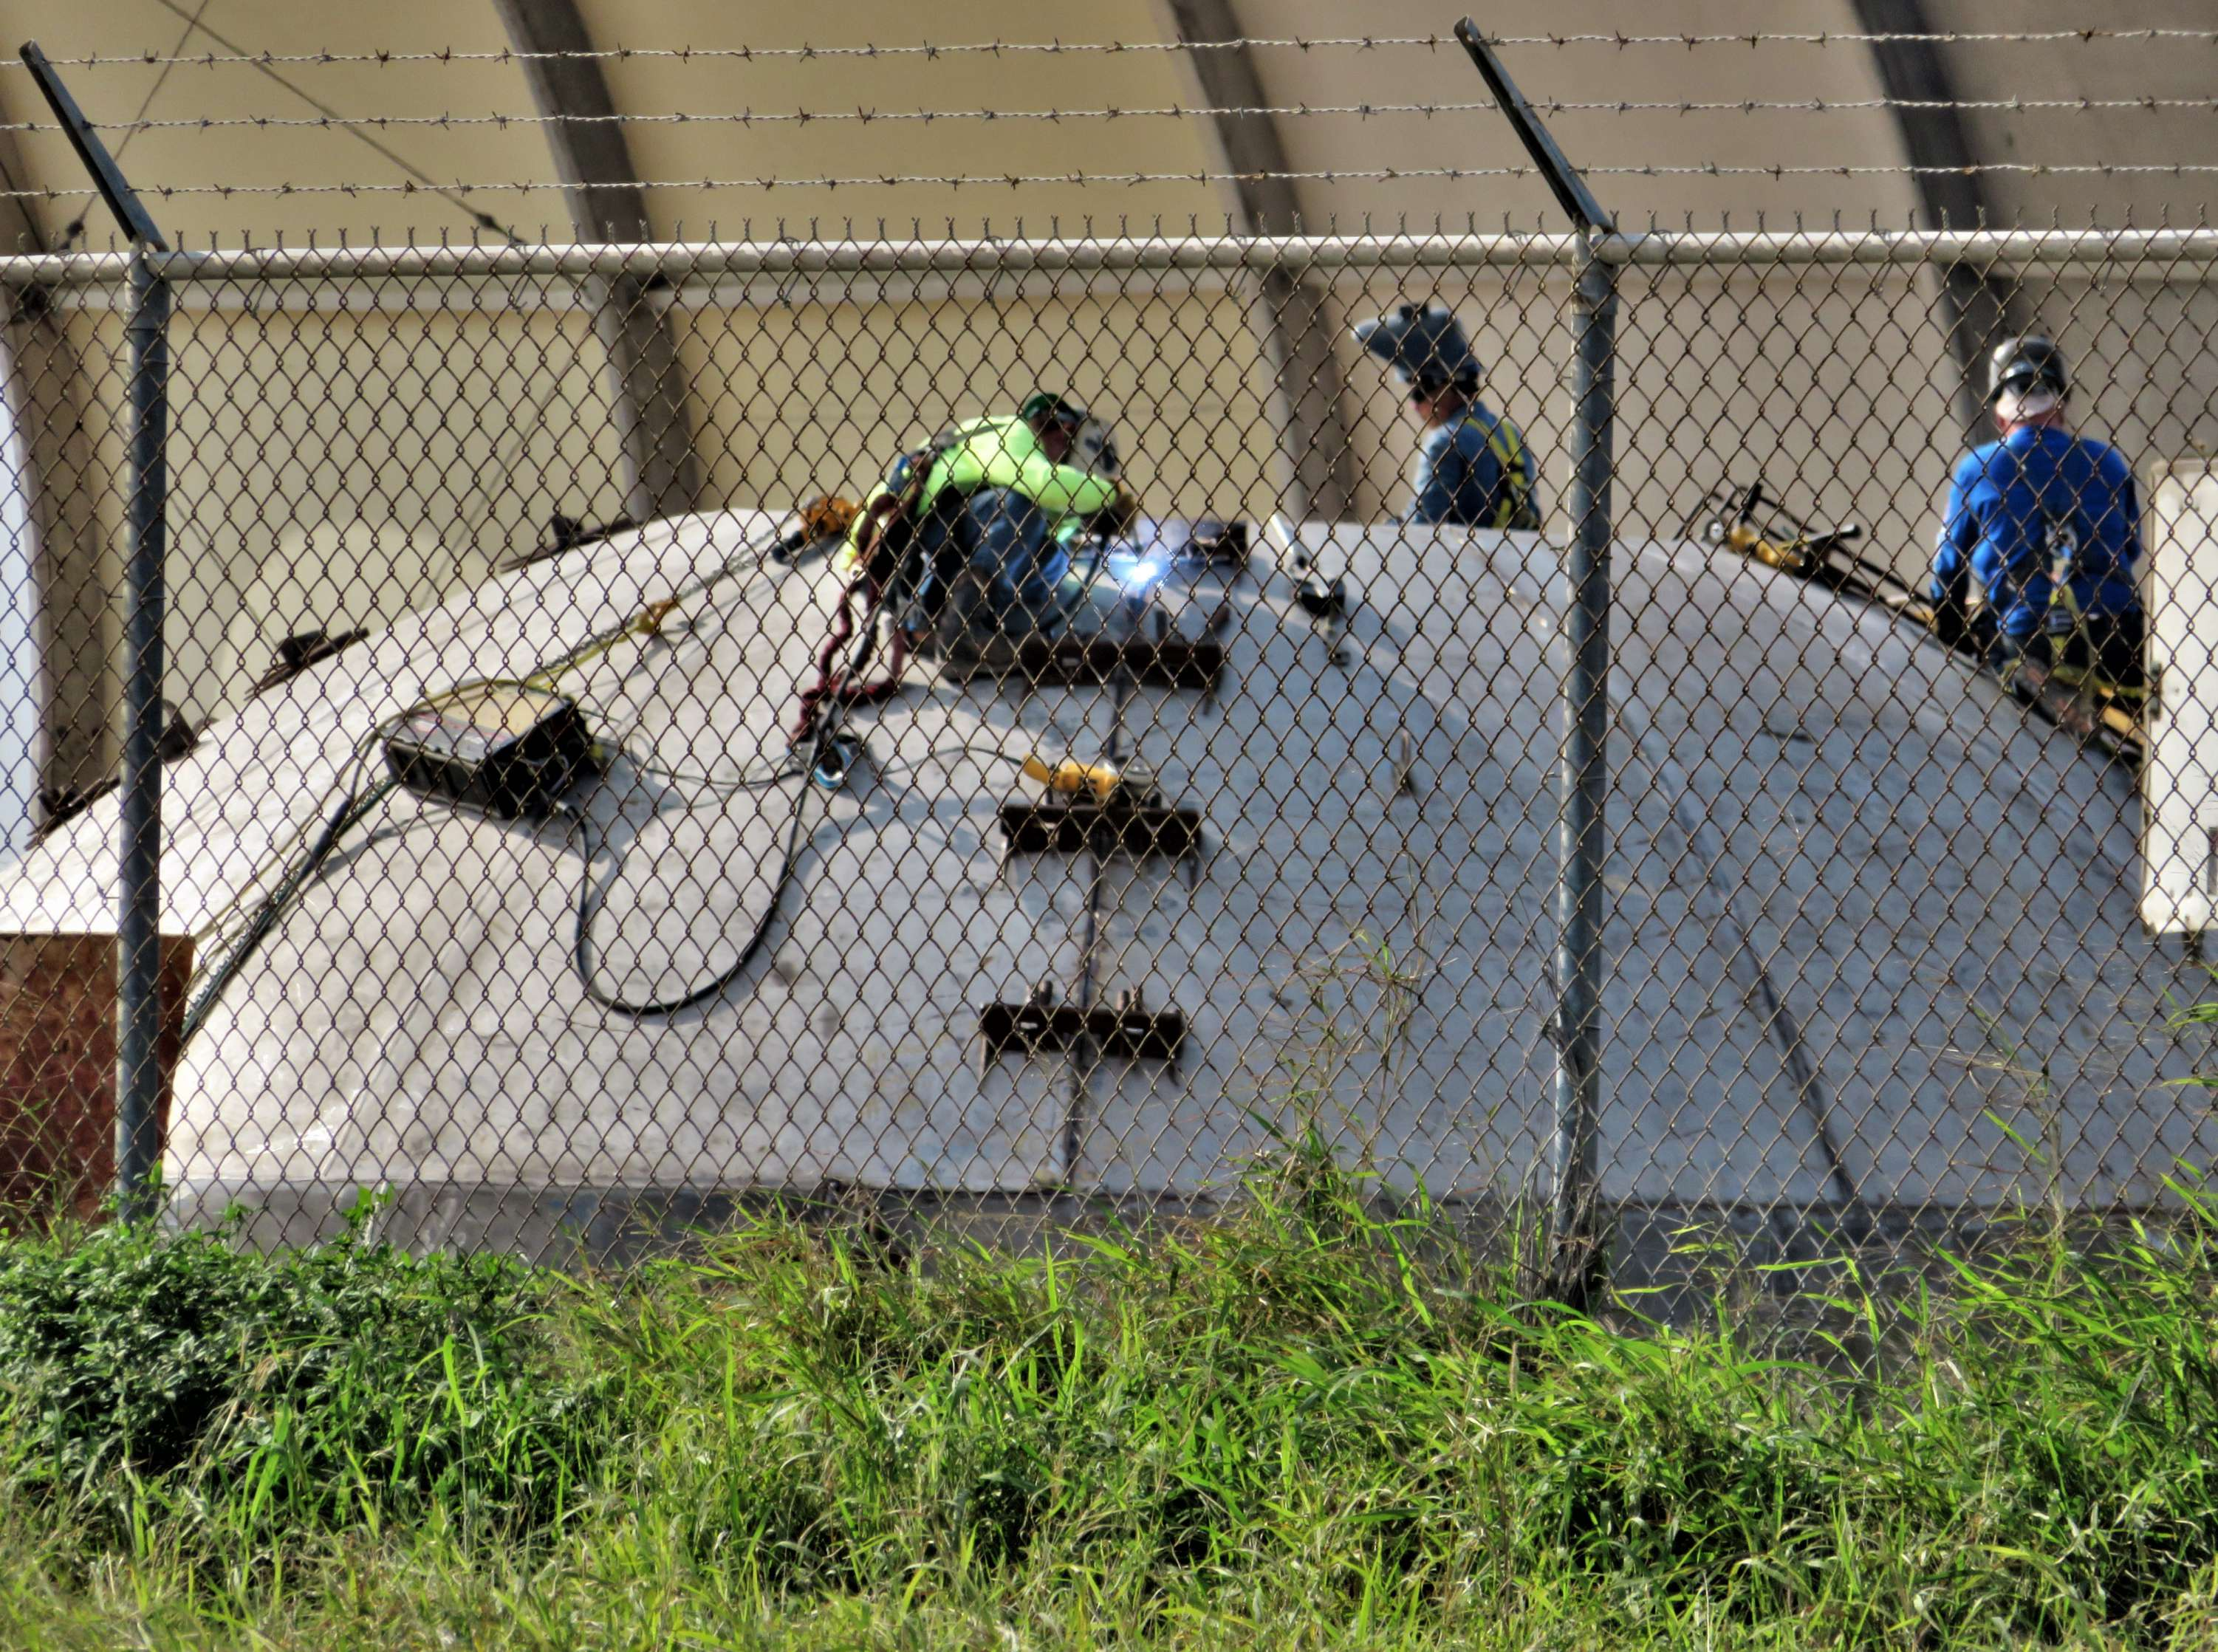 Boca Chica Starhopper dome work 010918 (NSF – bocachicagal) 9(c)